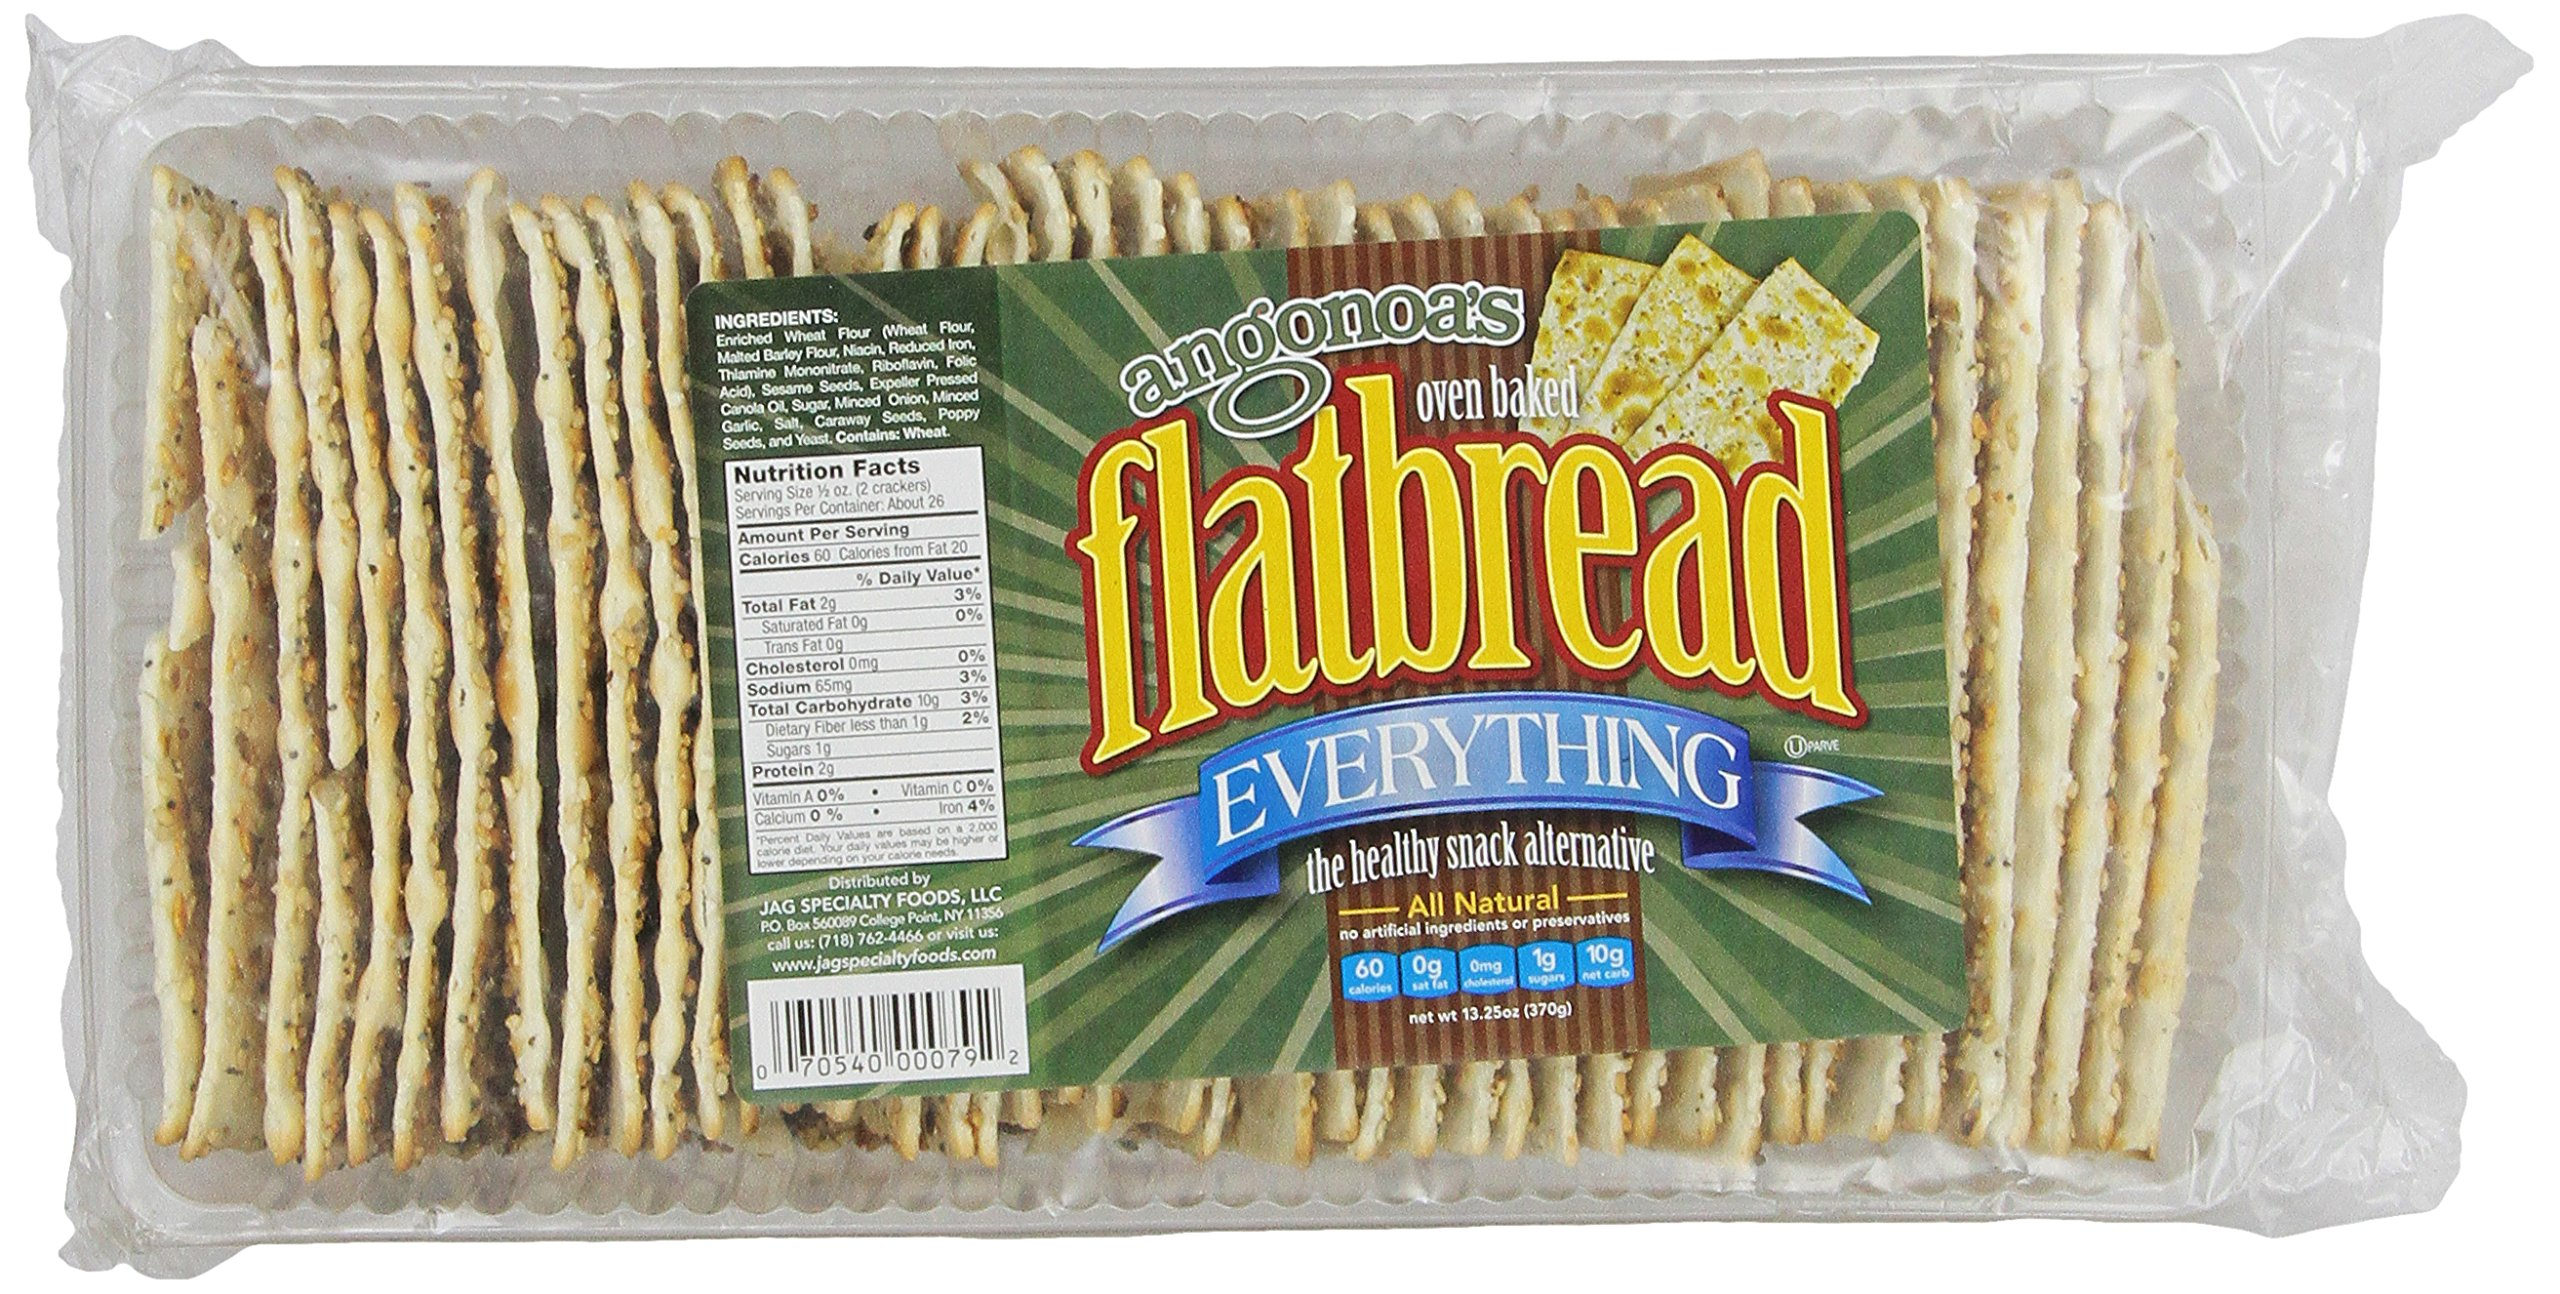 Angonoa's Flatbread, Everything, 13.25 Ounce